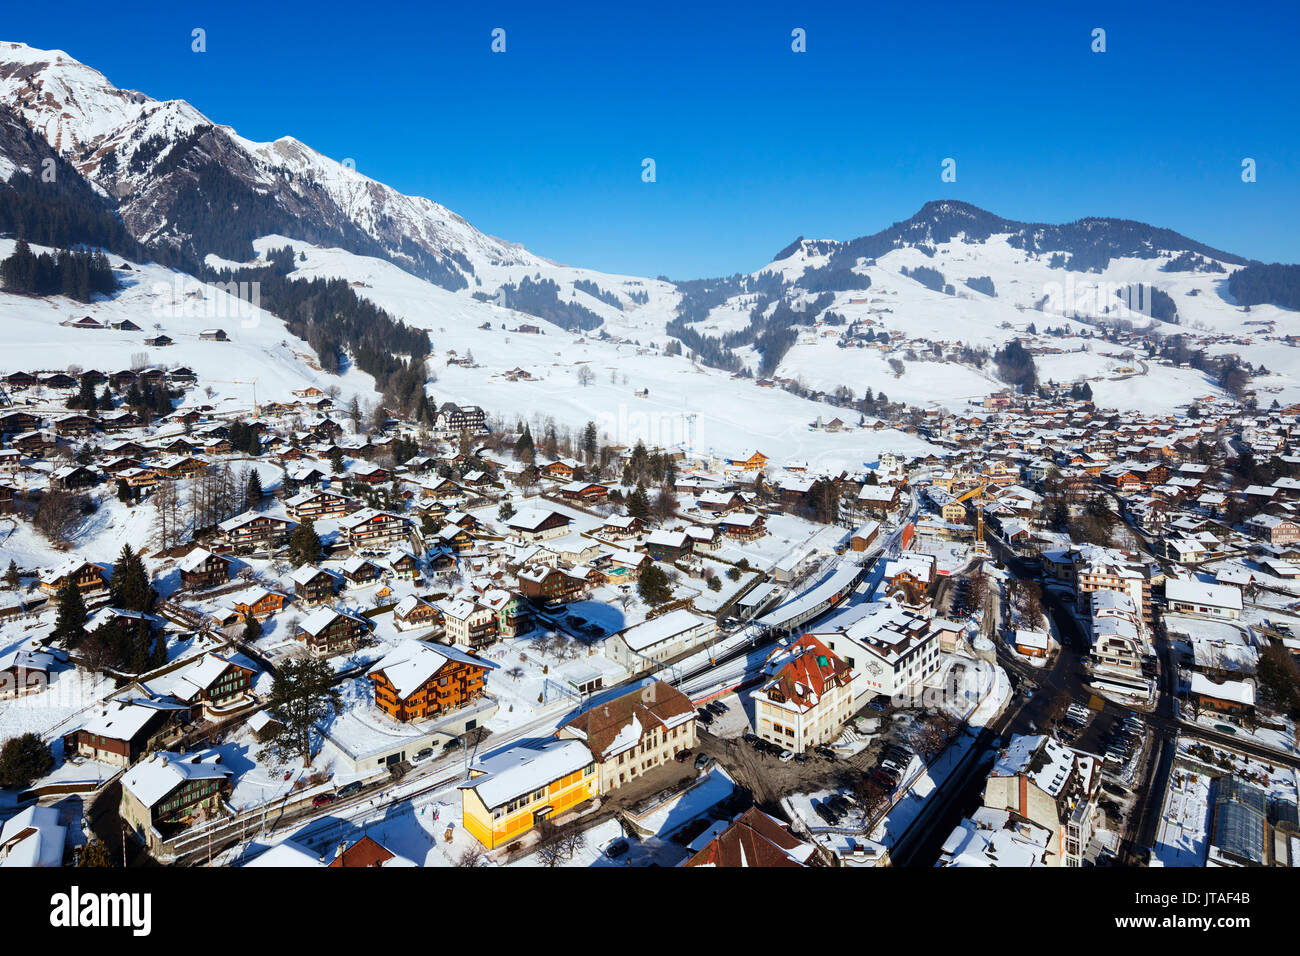 Aerial view, Chateau-d'Oex, Vaud, Swiss Alps, Switzerland, Europe Stock Photo